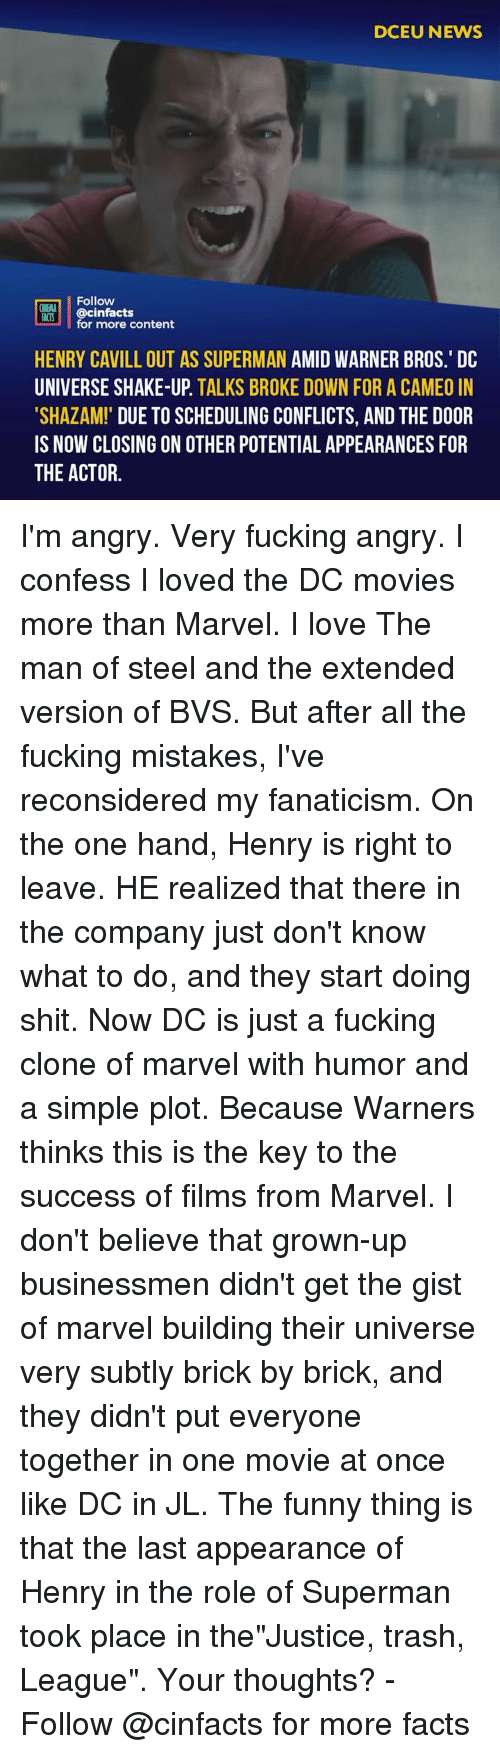 "Facts, Fucking, and Funny: DCEU NEWS  Follow  ONEMA  ACIS @cinfacts  for more content  HENRY CAVILL OUT AS SUPERMAN AMID WARNER BROS.' DC  UNIVERSE SHAKE-UP. TALKS BROKE DOWN FOR A CAMEO IN  SHAZAM! DUE TO SCHEDULING CONFLICTS, AND THE DOOR  IS NOW CLOSING ON OTHER POTENTIAL APPEARANCES FOR  THE ACTOR. I'm angry. Very fucking angry. I confess I loved the DC movies more than Marvel. I love The man of steel and the extended version of BVS. But after all the fucking mistakes, I've reconsidered my fanaticism. On the one hand, Henry is right to leave. HE realized that there in the company just don't know what to do, and they start doing shit. Now DC is just a fucking clone of marvel with humor and a simple plot. Because Warners thinks this is the key to the success of films from Marvel. I don't believe that grown-up businessmen didn't get the gist of marvel building their universe very subtly brick by brick, and they didn't put everyone together in one movie at once like DC in JL. The funny thing is that the last appearance of Henry in the role of Superman took place in the""Justice, trash, League"". Your thoughts? -⠀ Follow @cinfacts for more facts"